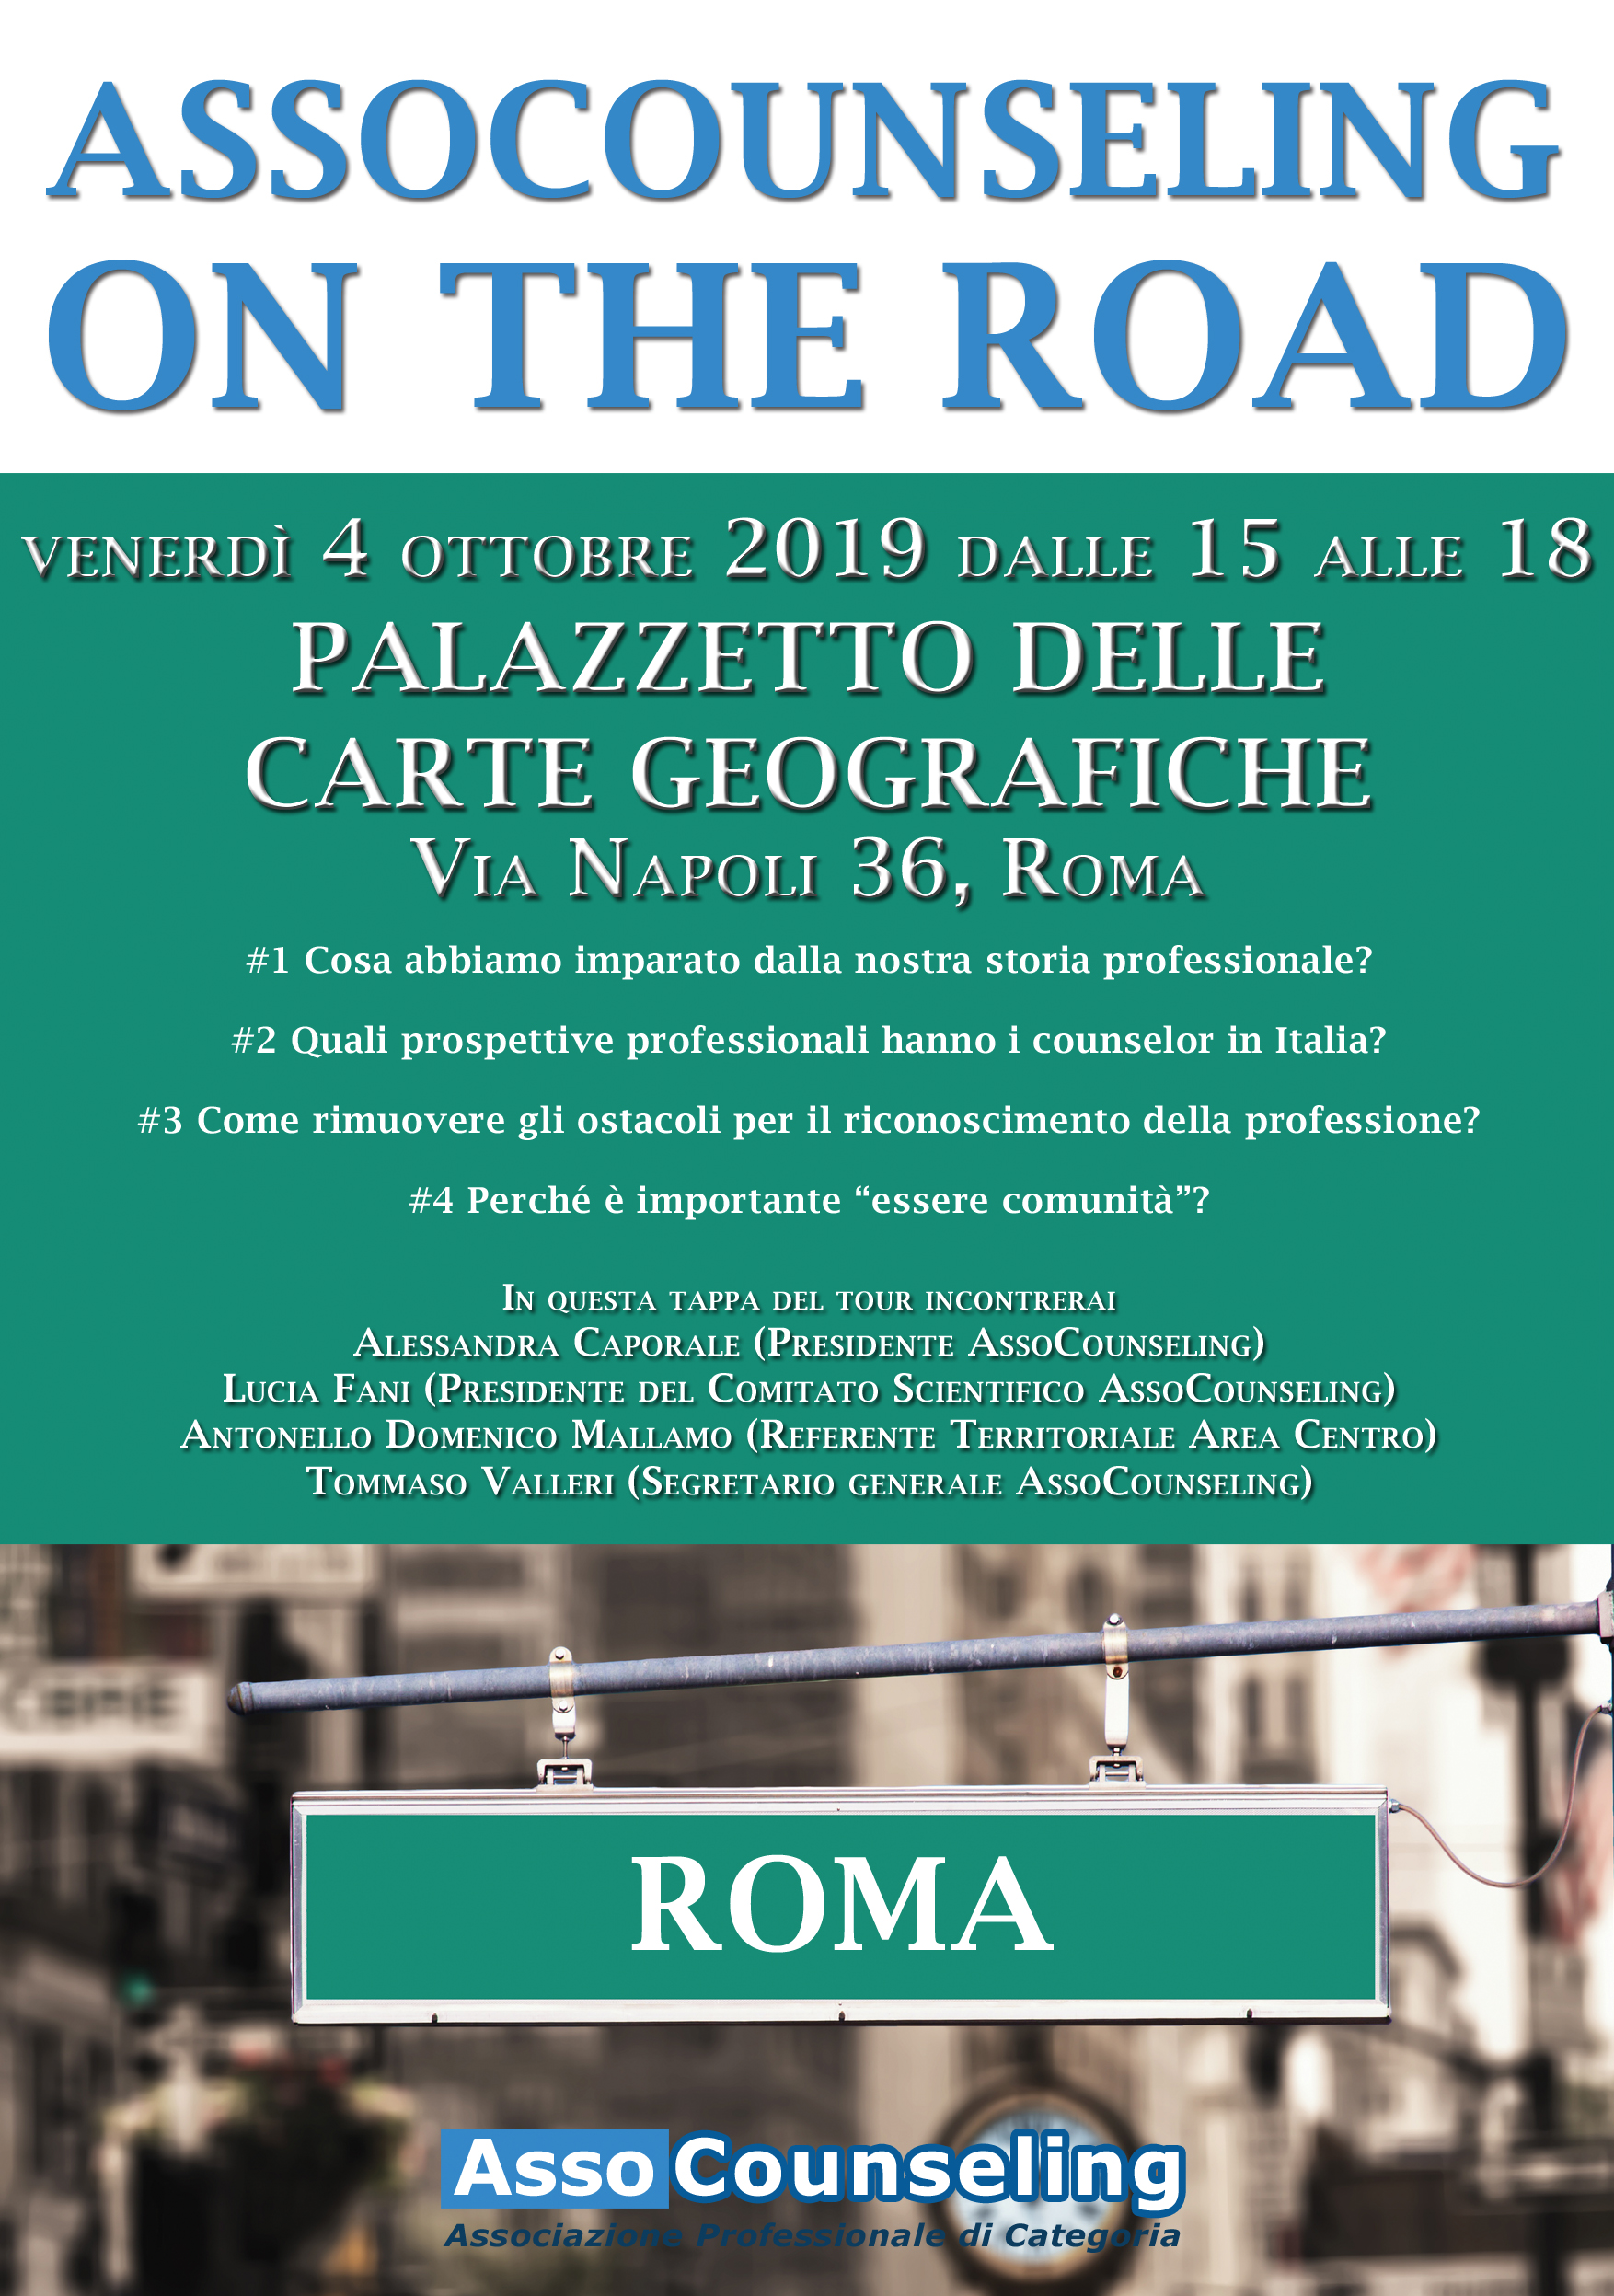 AssoCounseling on the road, Roma, 4 ottobre 2019